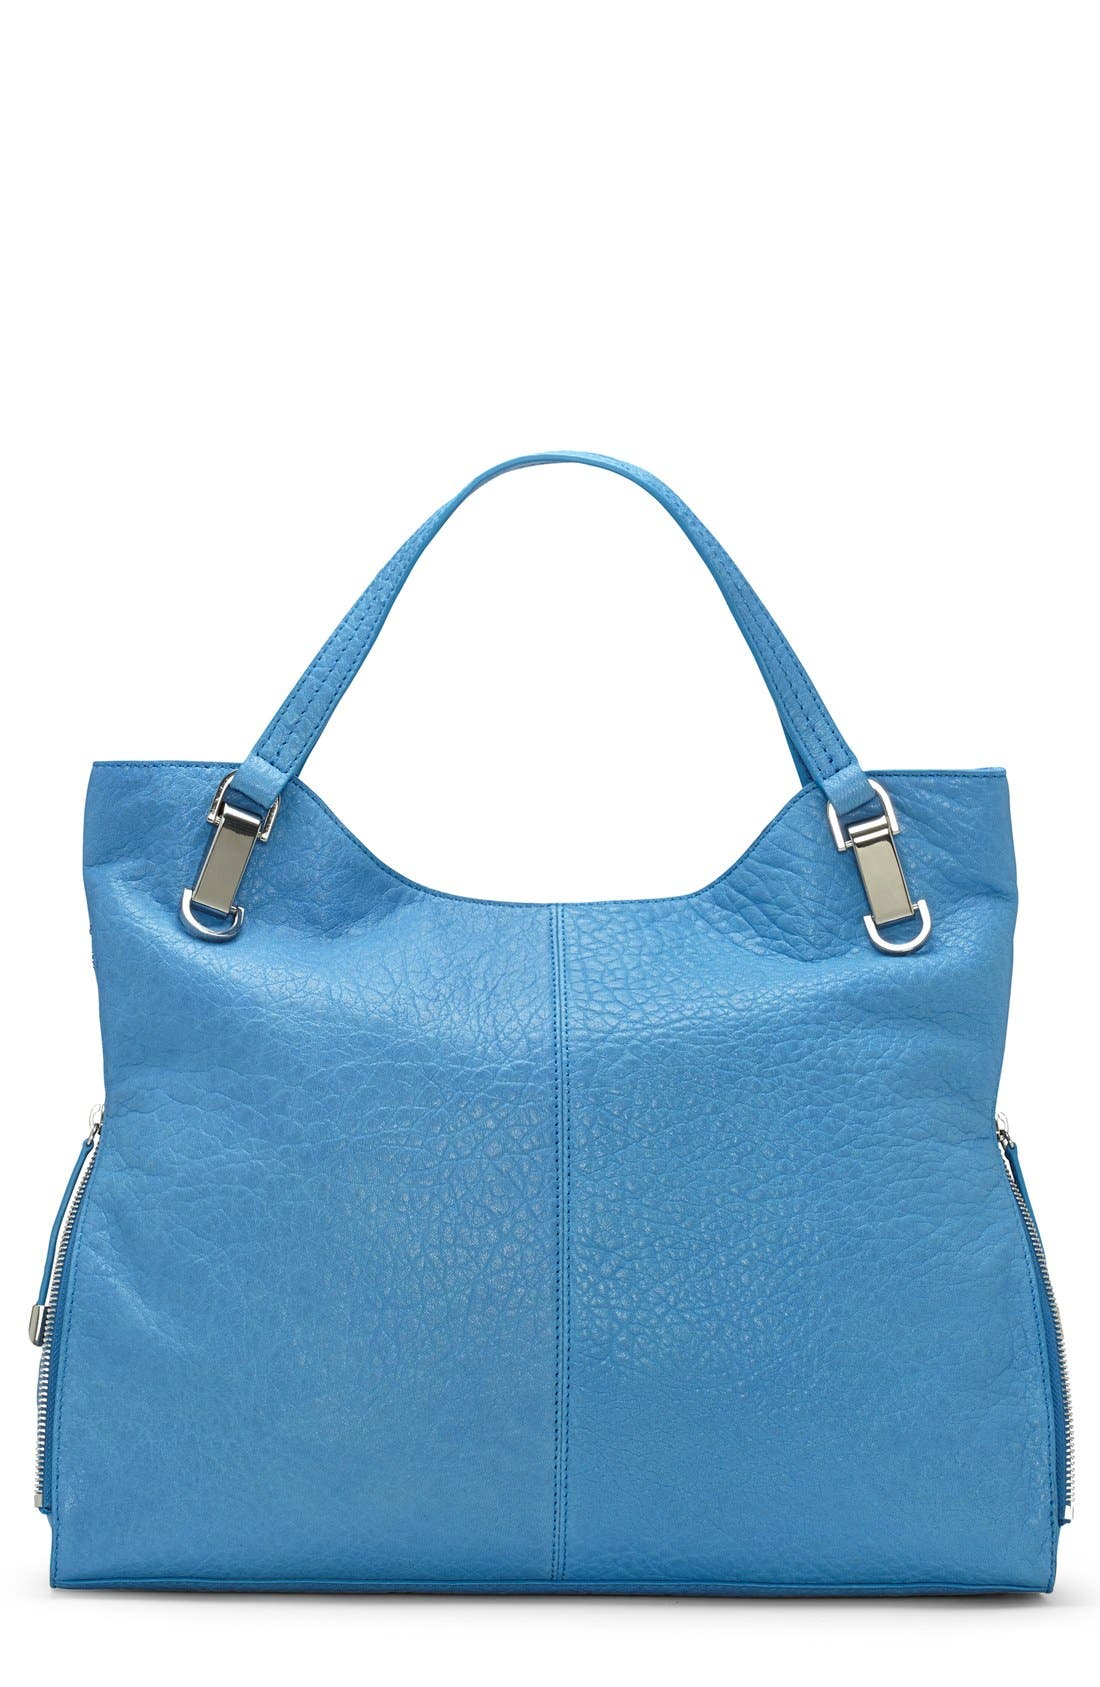 'Riley' Leather Tote,                             Main thumbnail 24, color,